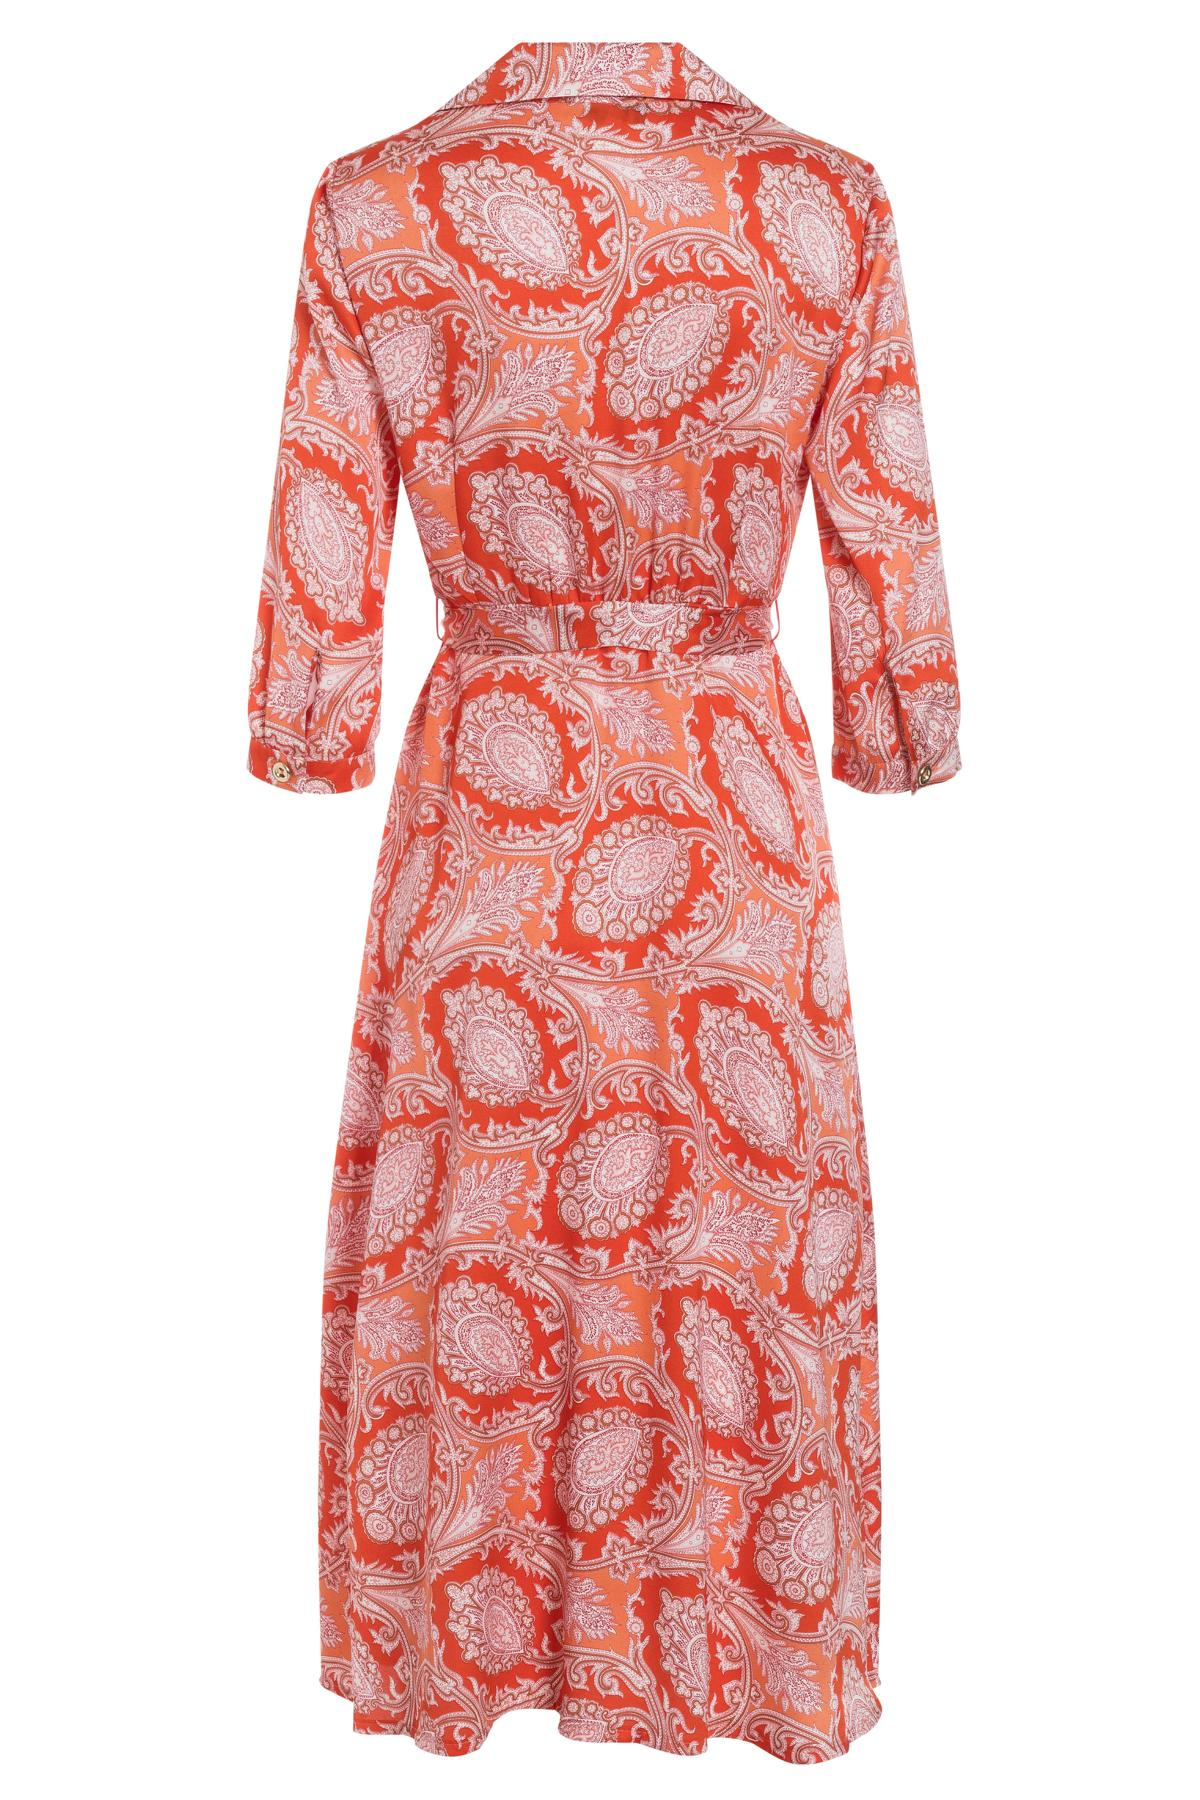 PRODUCT_PICTURE_PRE_7Ana Alcazar Midi Kleid Tefrole Rot PRODUCT_PICTURE_SUF_7